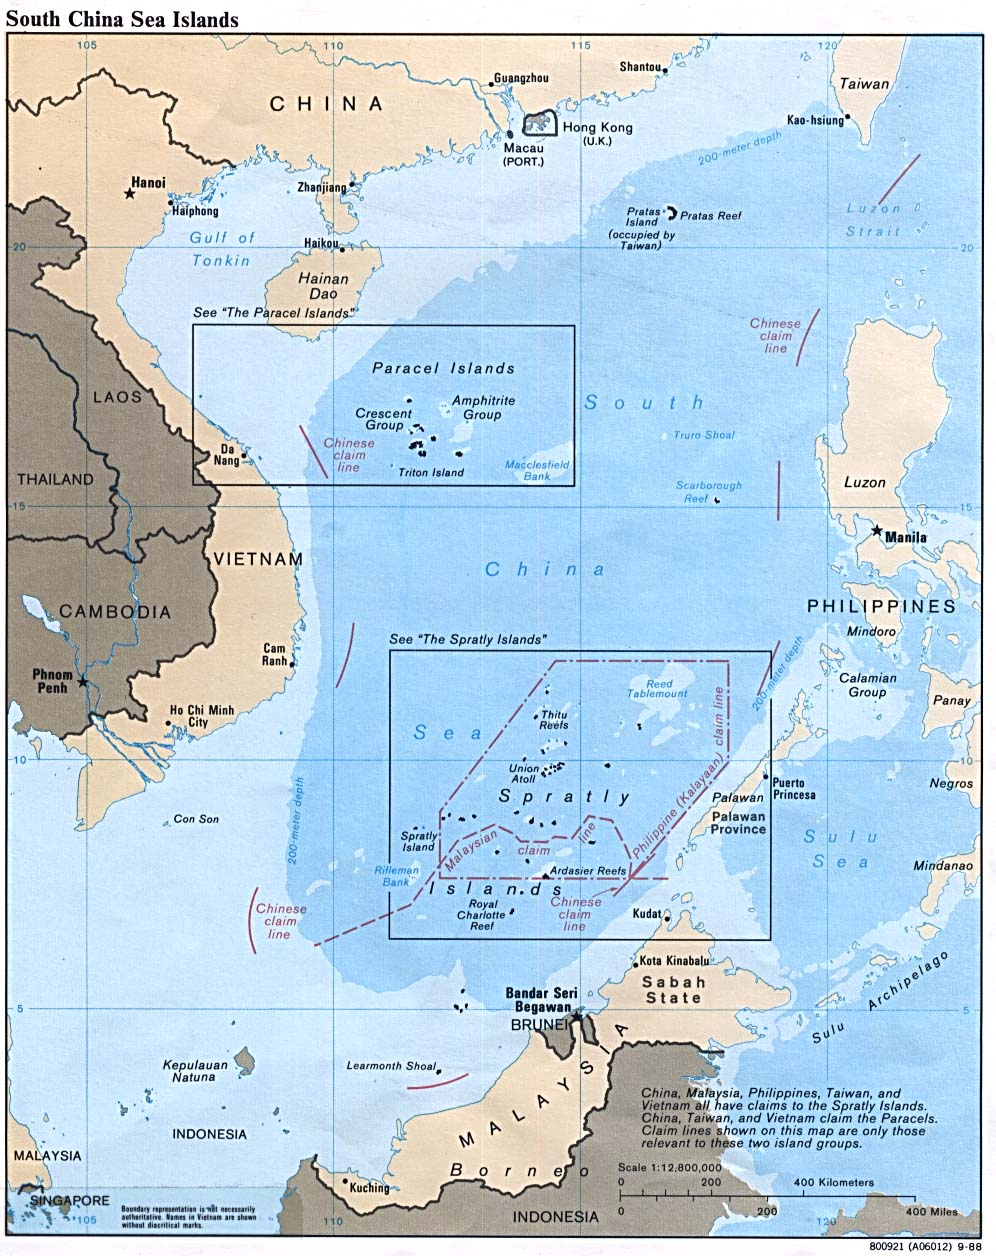 WORLD DEFENSE REVIEW PLA Paper Warns Of Naval Conflict - Map of us allies in the asia pacific